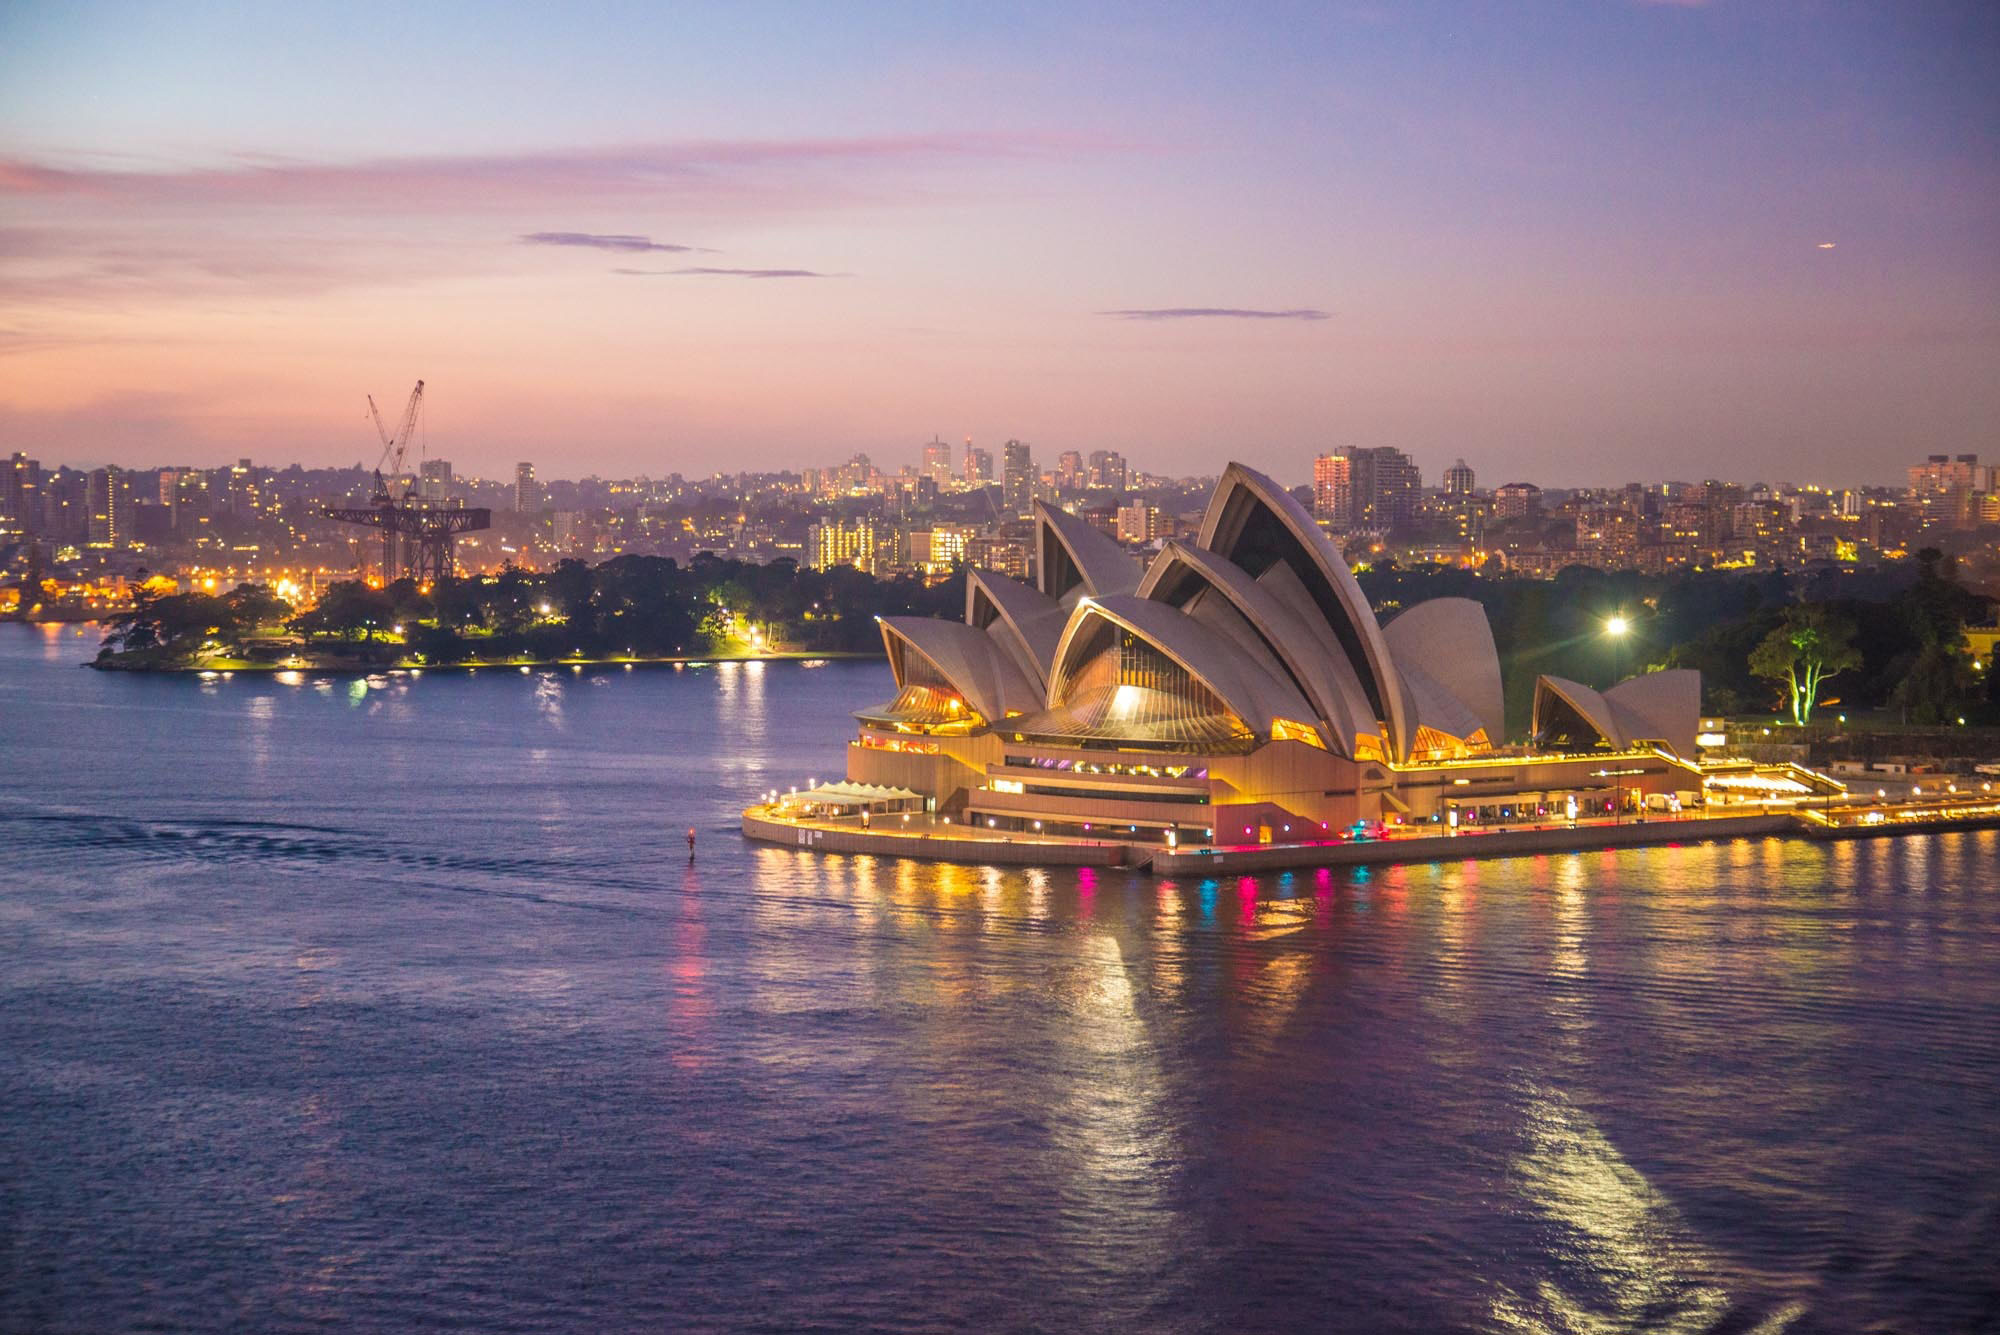 harbour,cityscape,water,evenuing,sydney